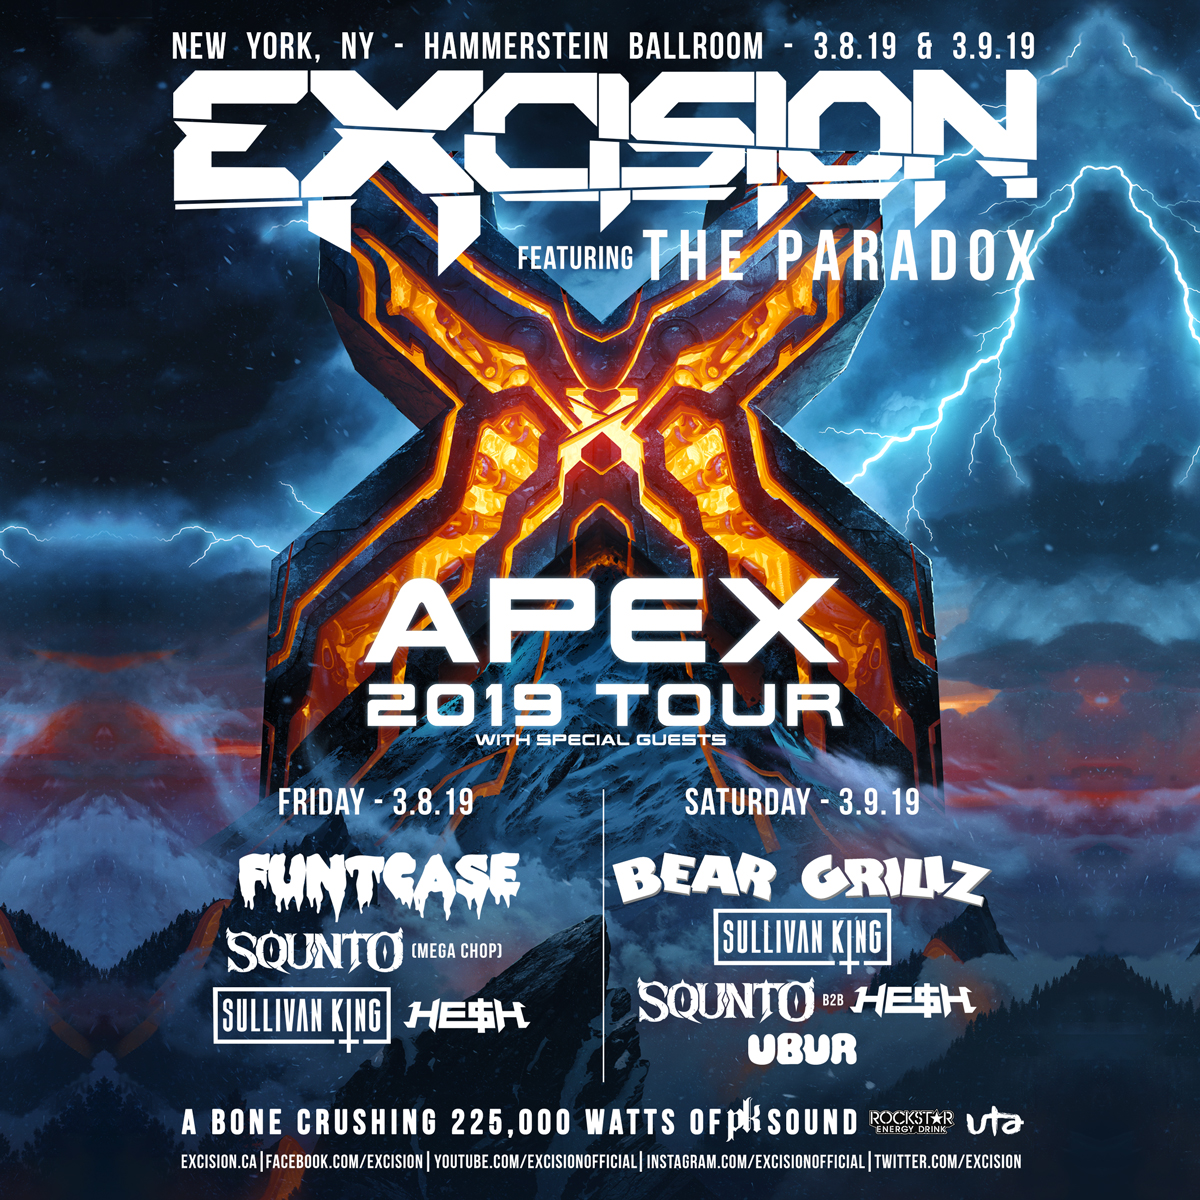 Excision Set To Shake Nycs Hammerstein Ballroom To Its Core With